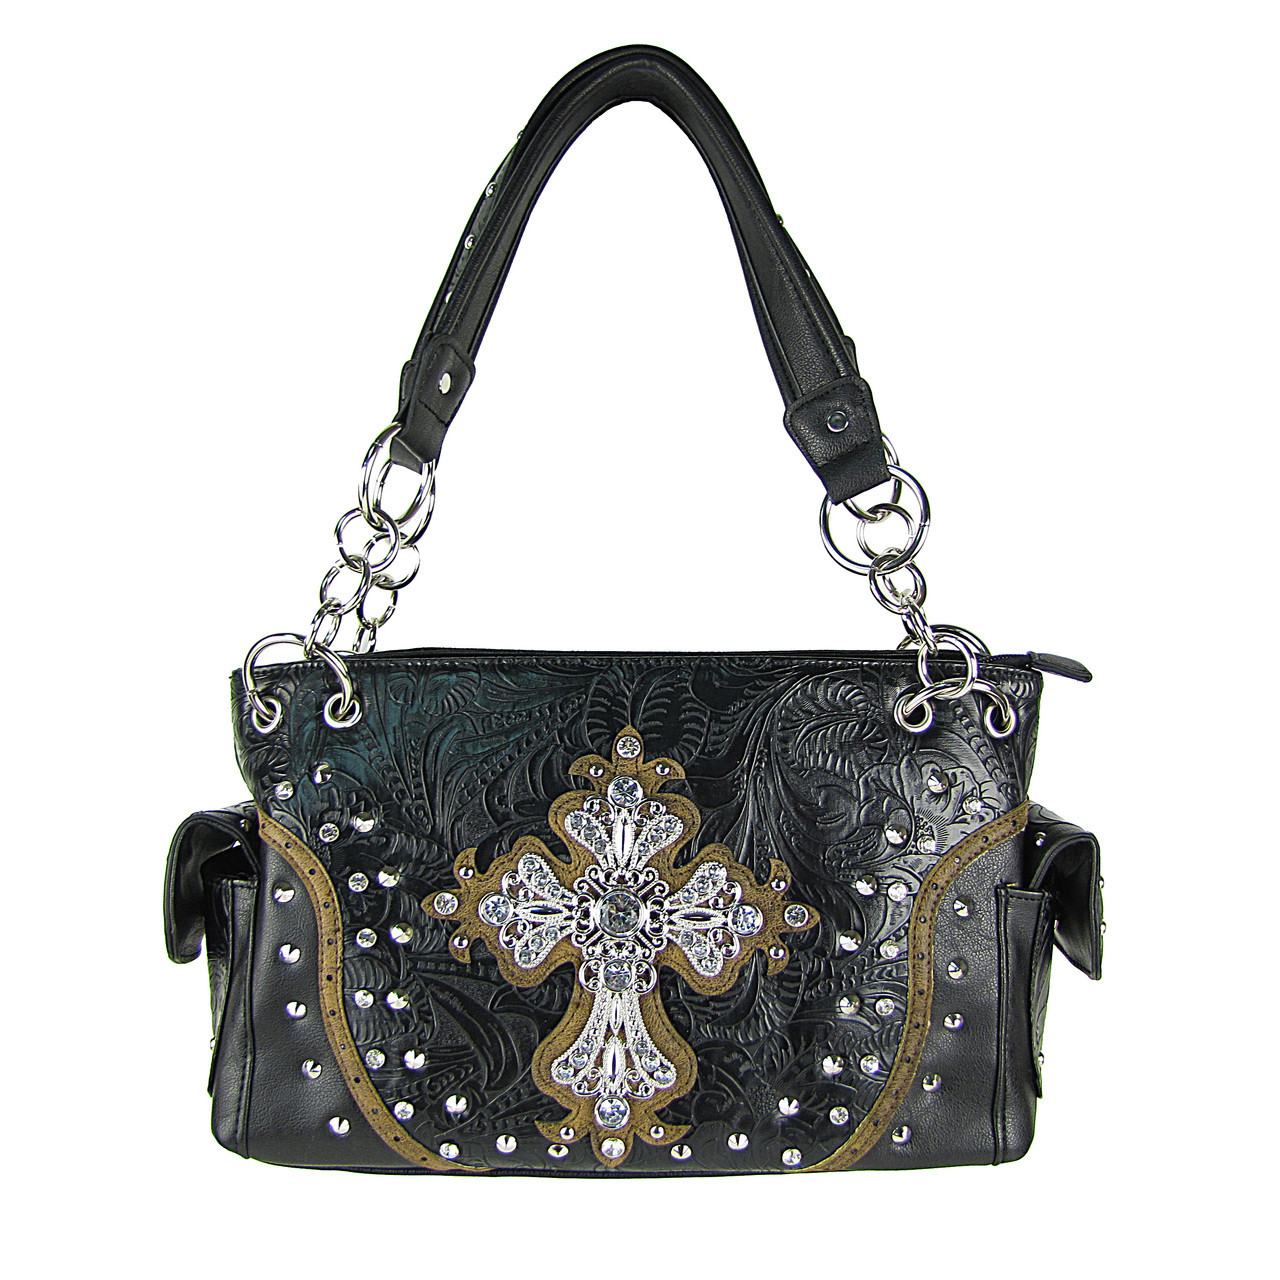 BLACK STUDDED RHINESTONE CROSS TOOLING LOOK SHOULDER HANDBAG HB1-35LCR-1BLK